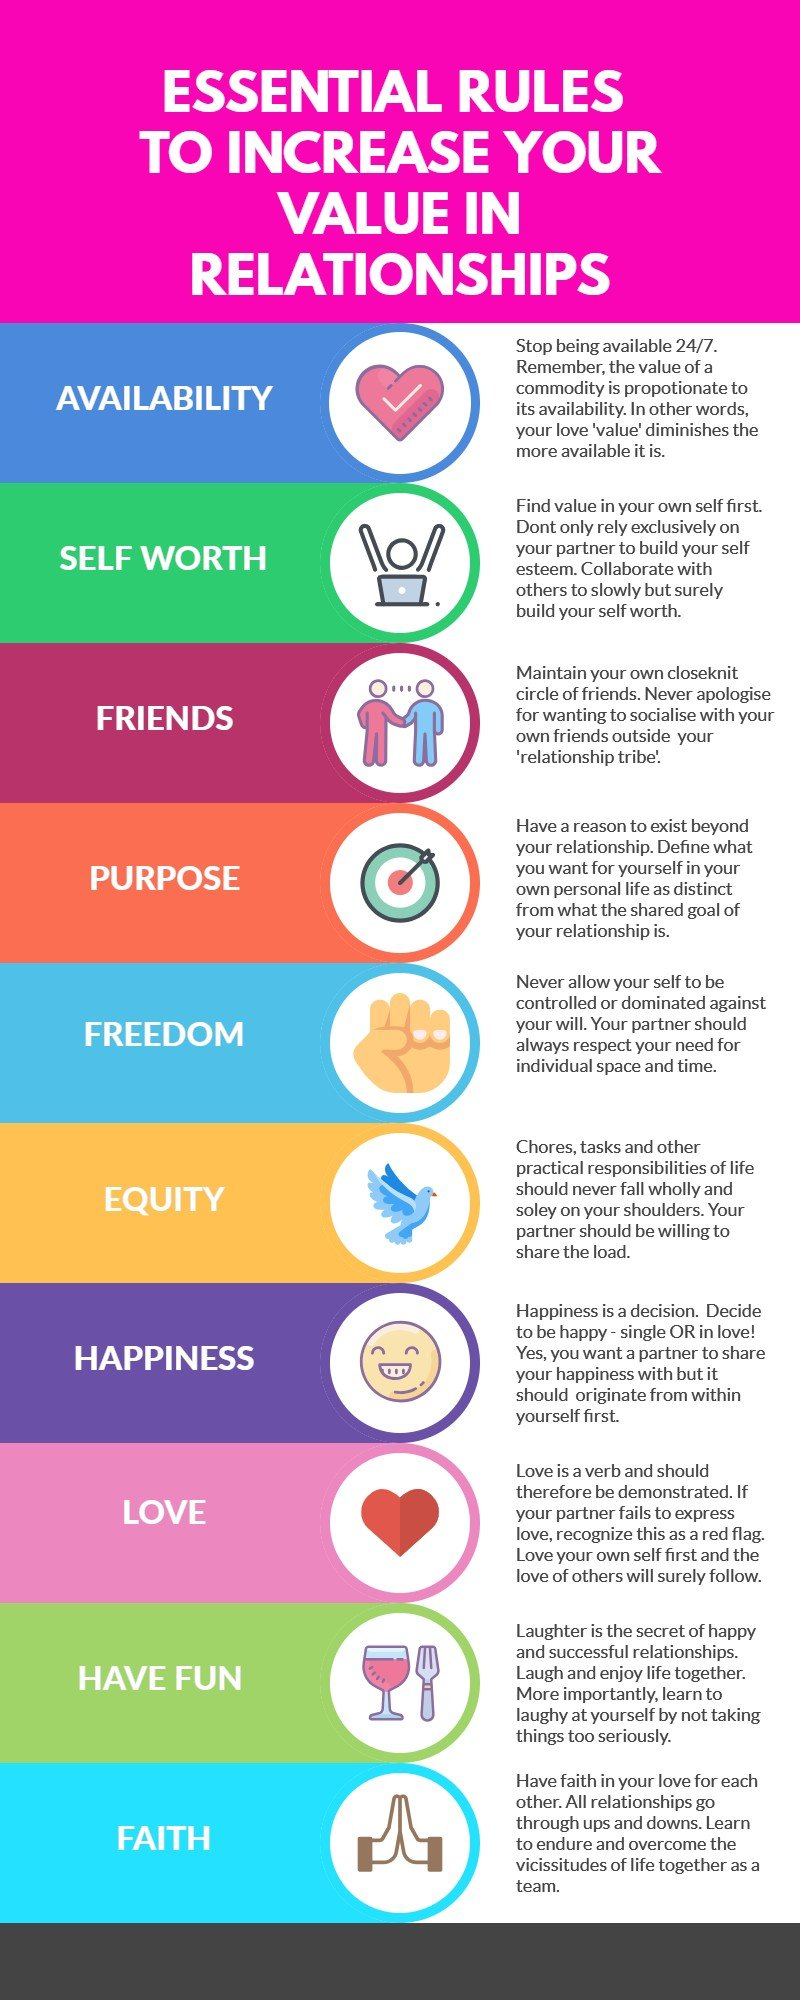 Creating value in relationships